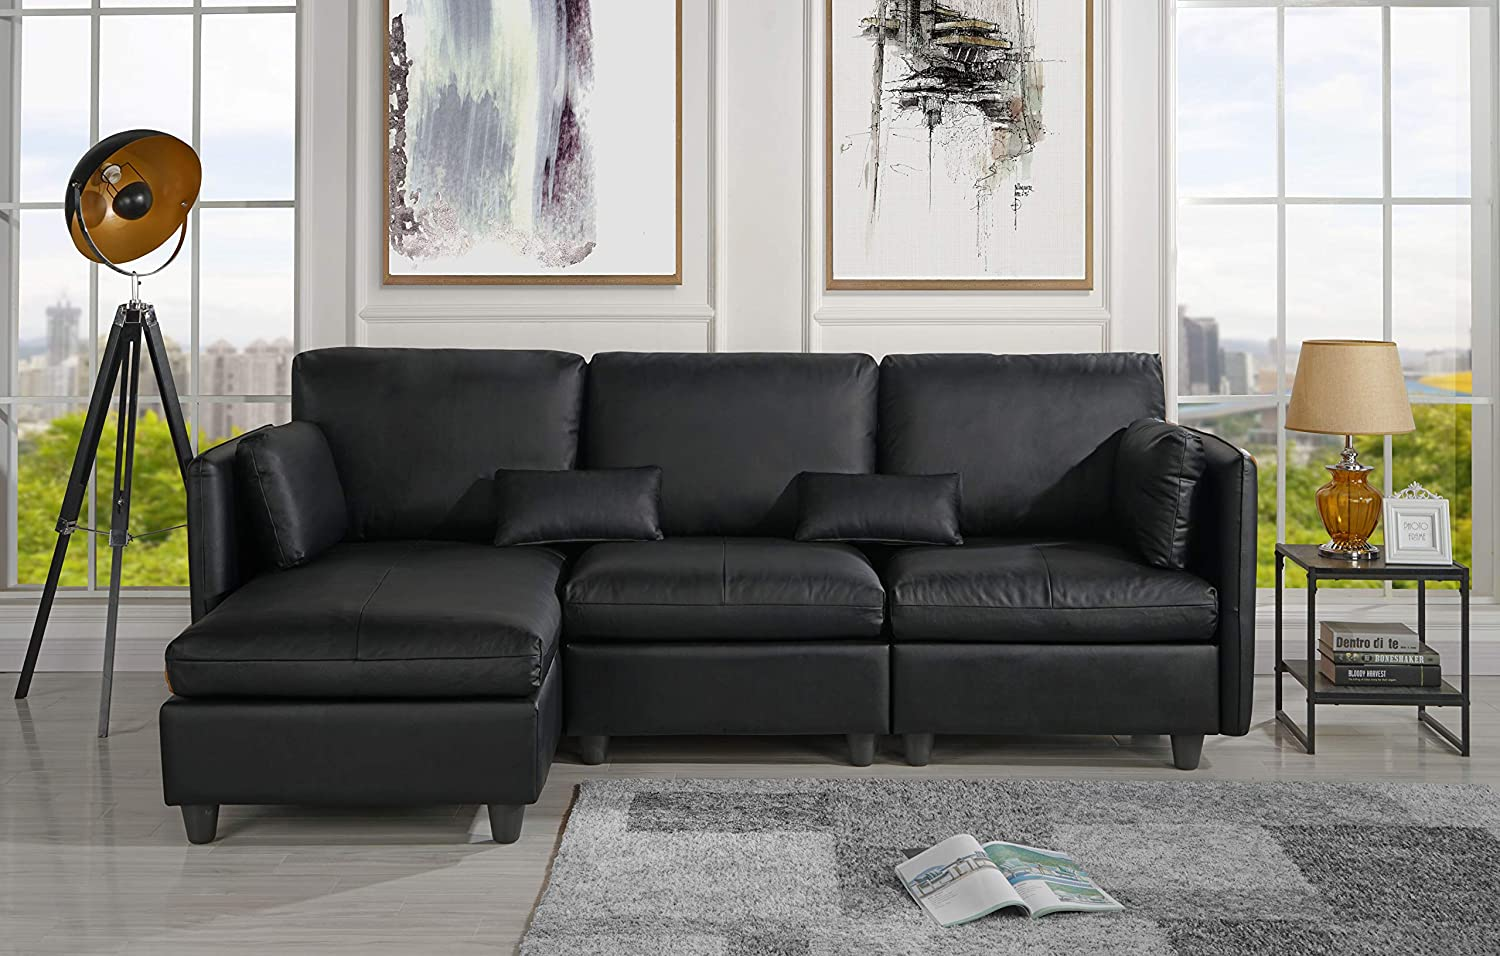 Amazing Amazon Com L Shape Living Room Leather Match Sectional Sofa Pabps2019 Chair Design Images Pabps2019Com